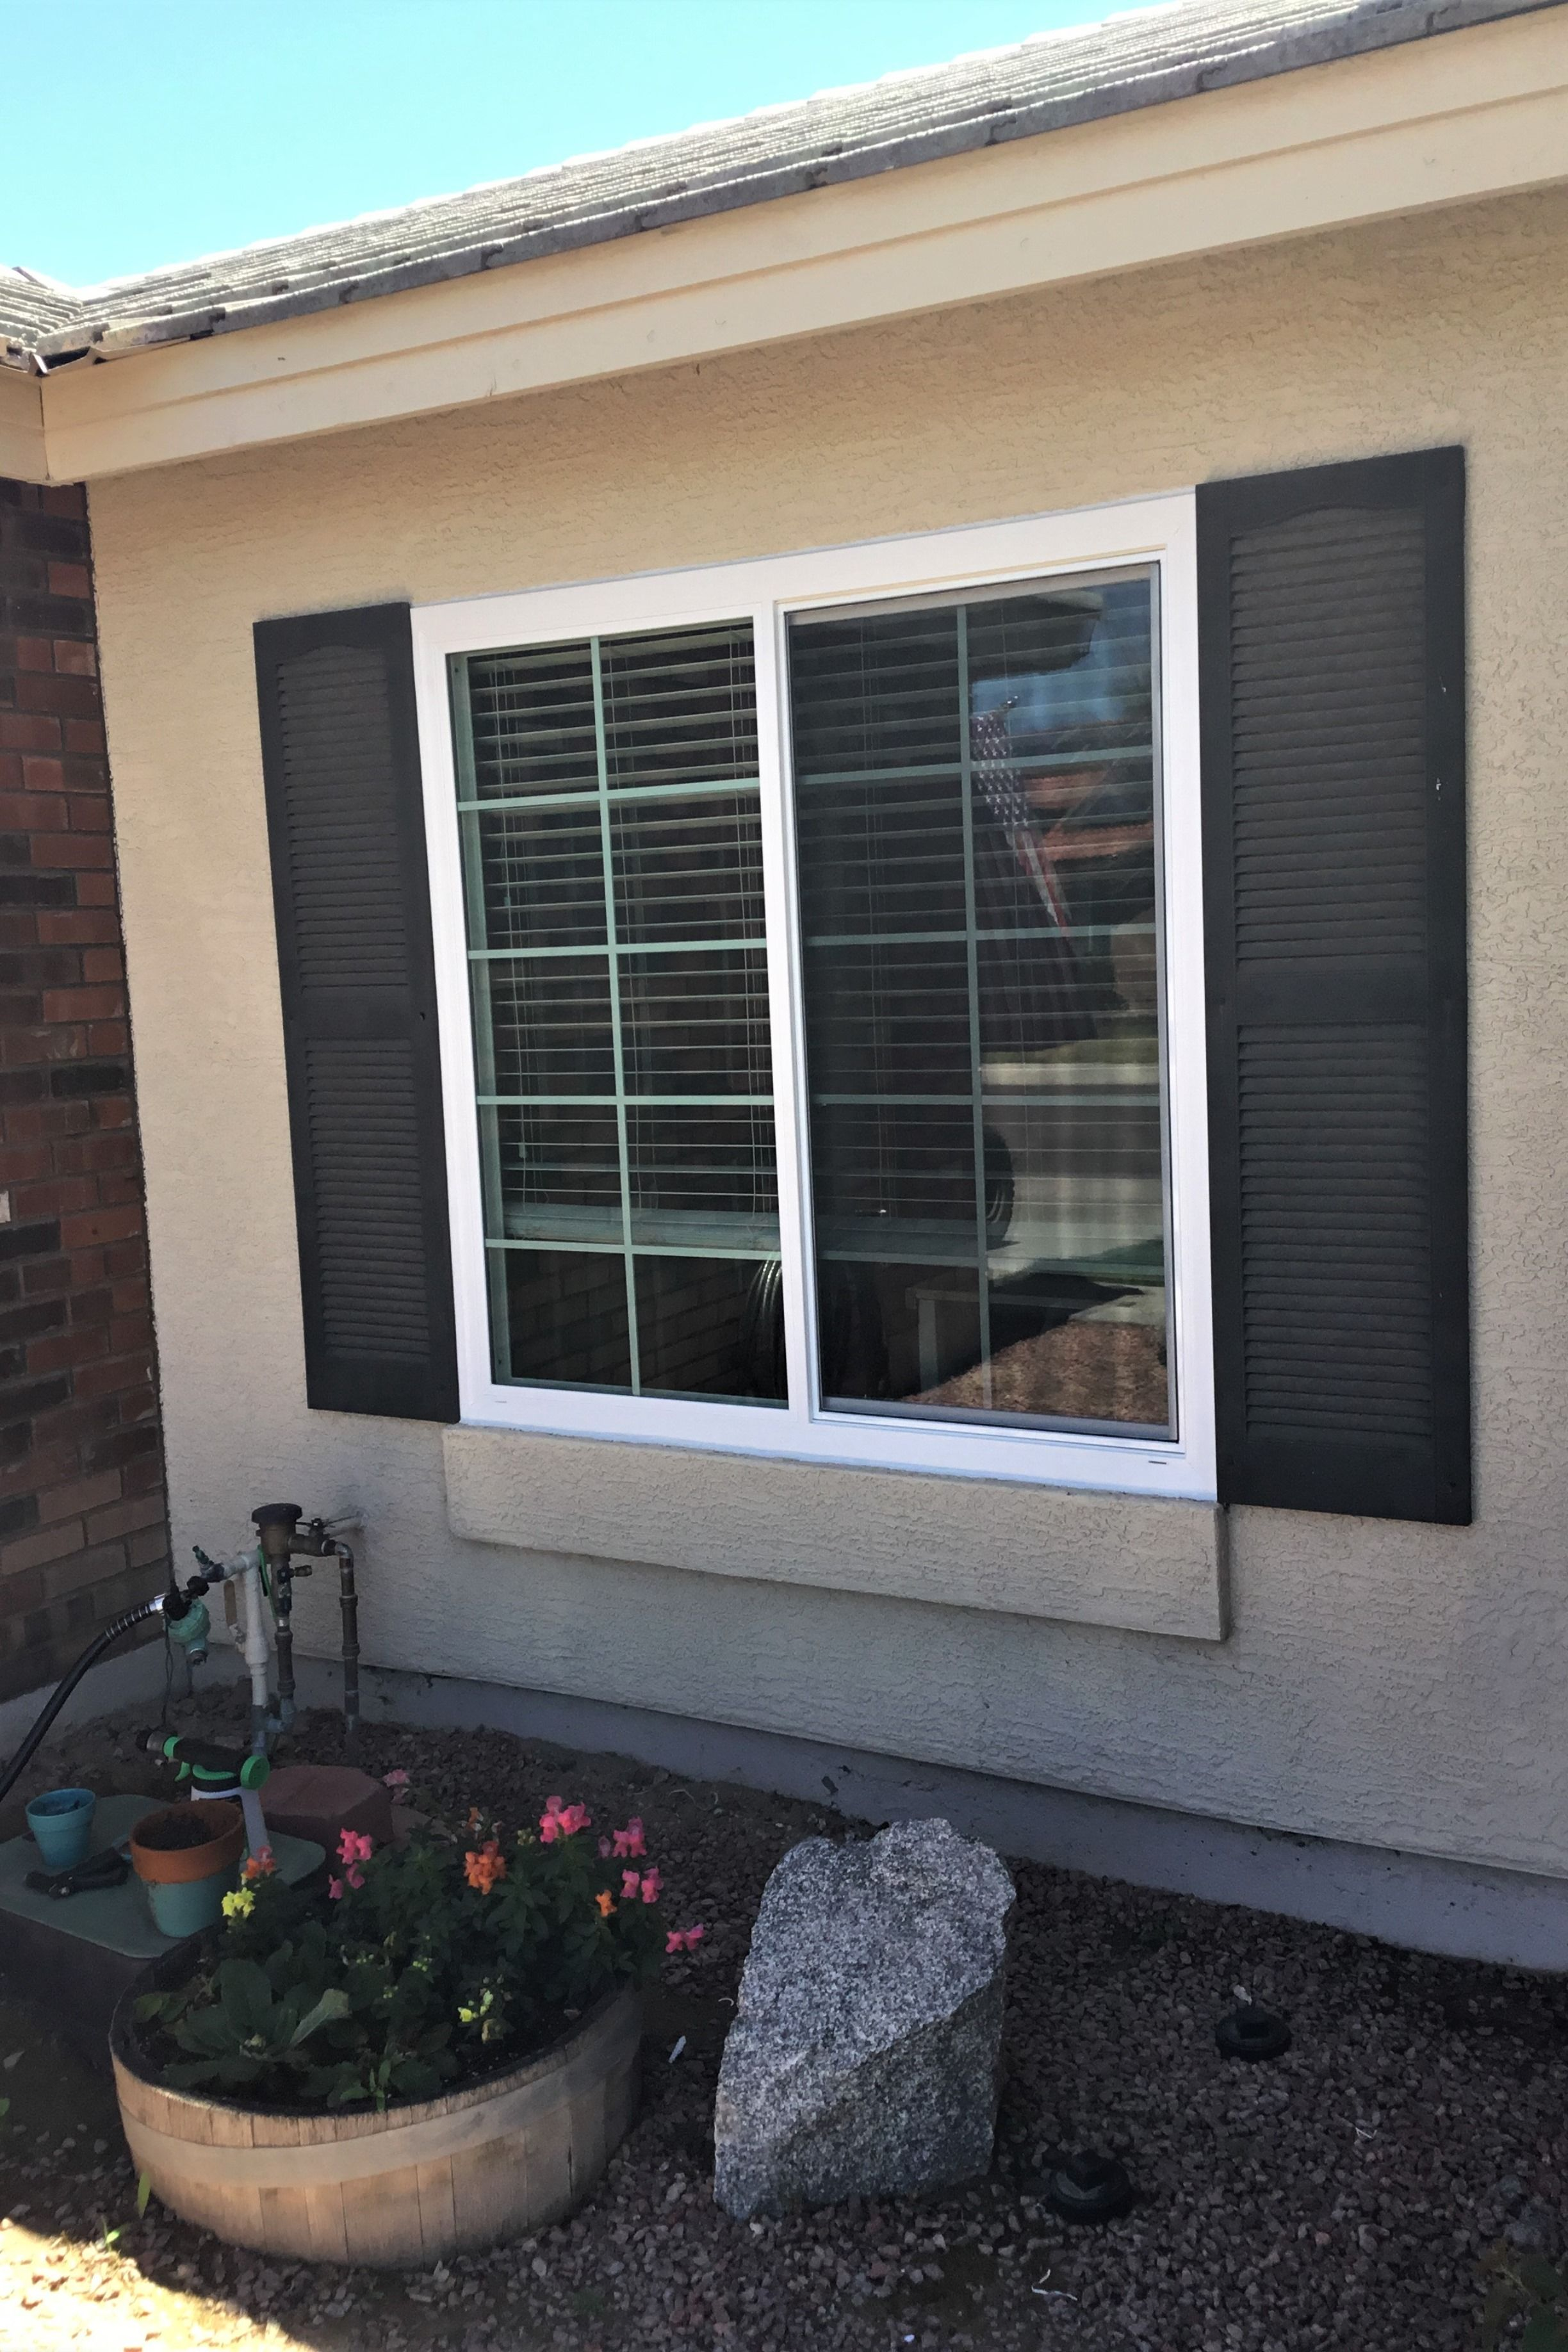 Fantastic Energy Efficient Window Replacement Done By Us At Affordable Windows This Window Features A Col Windows Affordable Windows Vinyl Replacement Windows